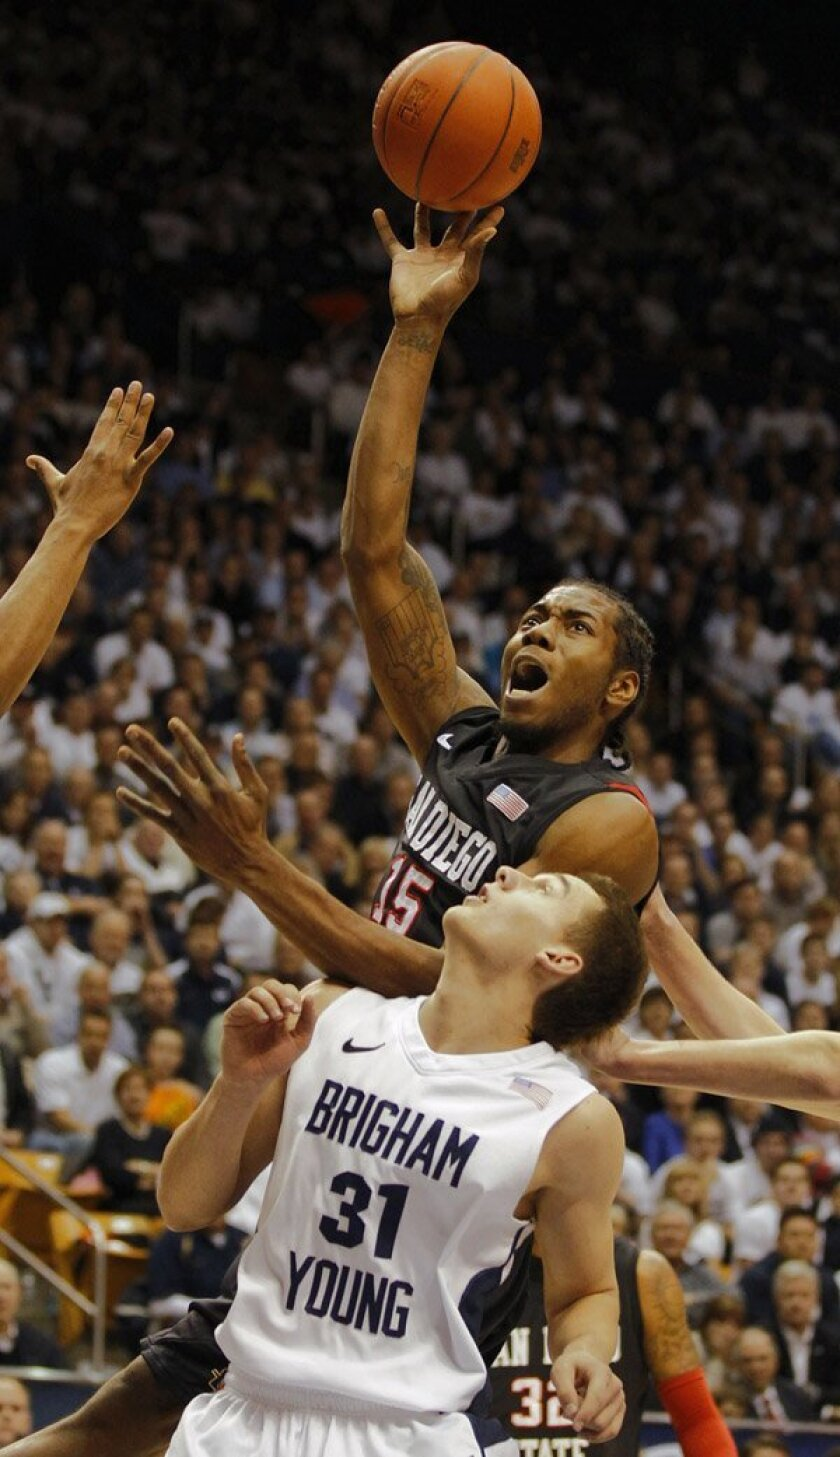 San Diego State's Kawhi Leonard, top, shoots over BYU's Kyle Collinsworth during the first half.